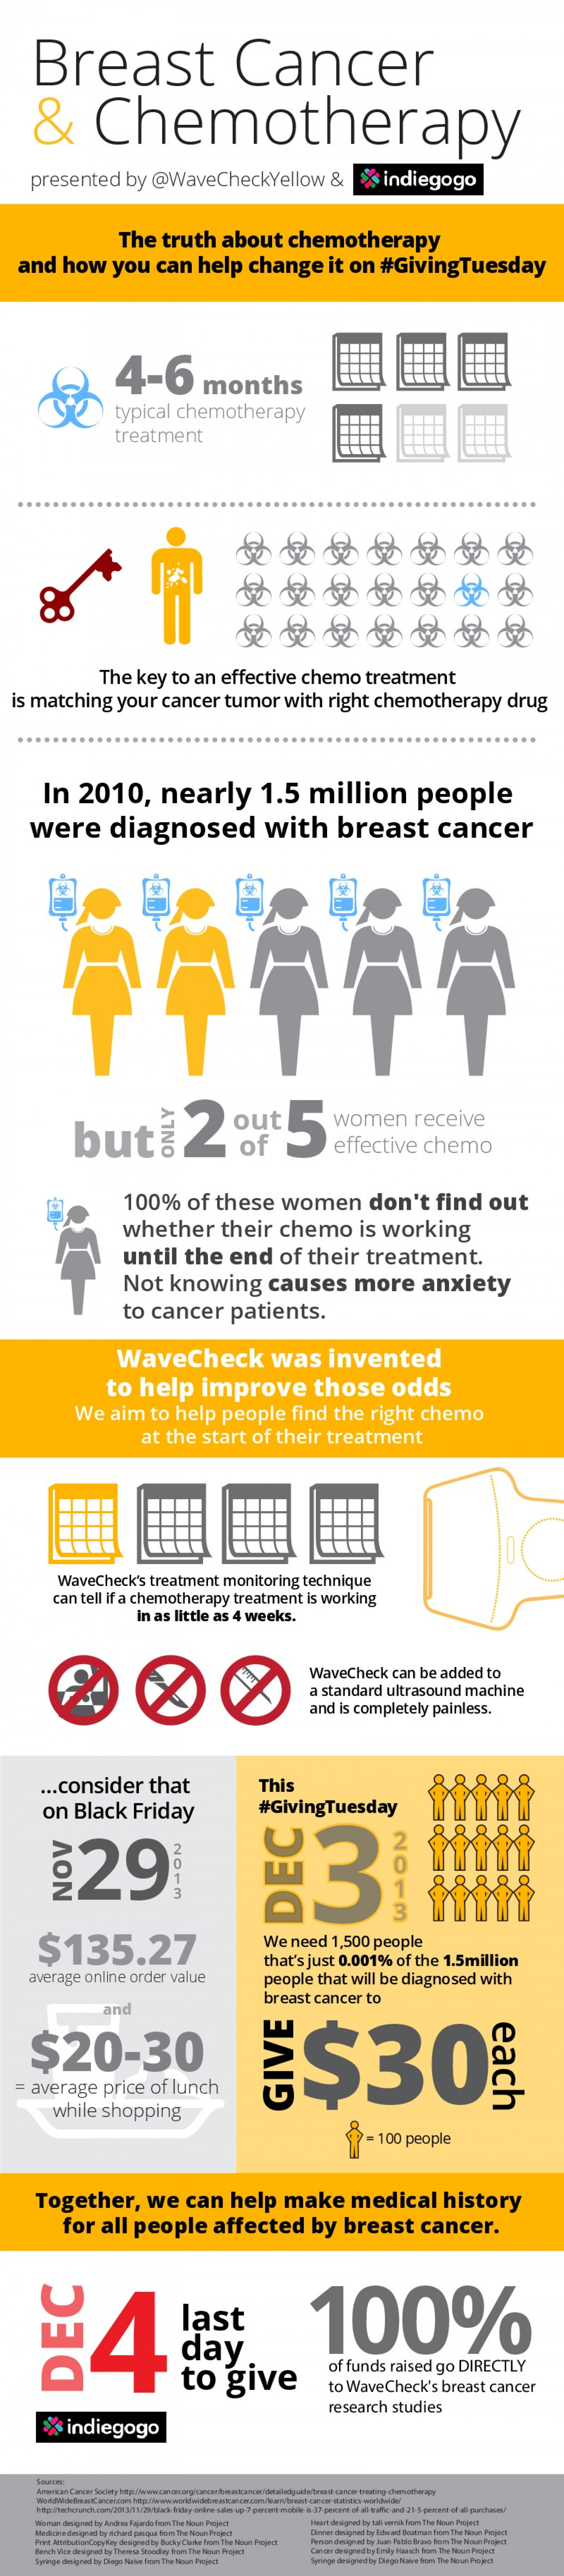 Breast Cancer & Chemotherapy Infographic